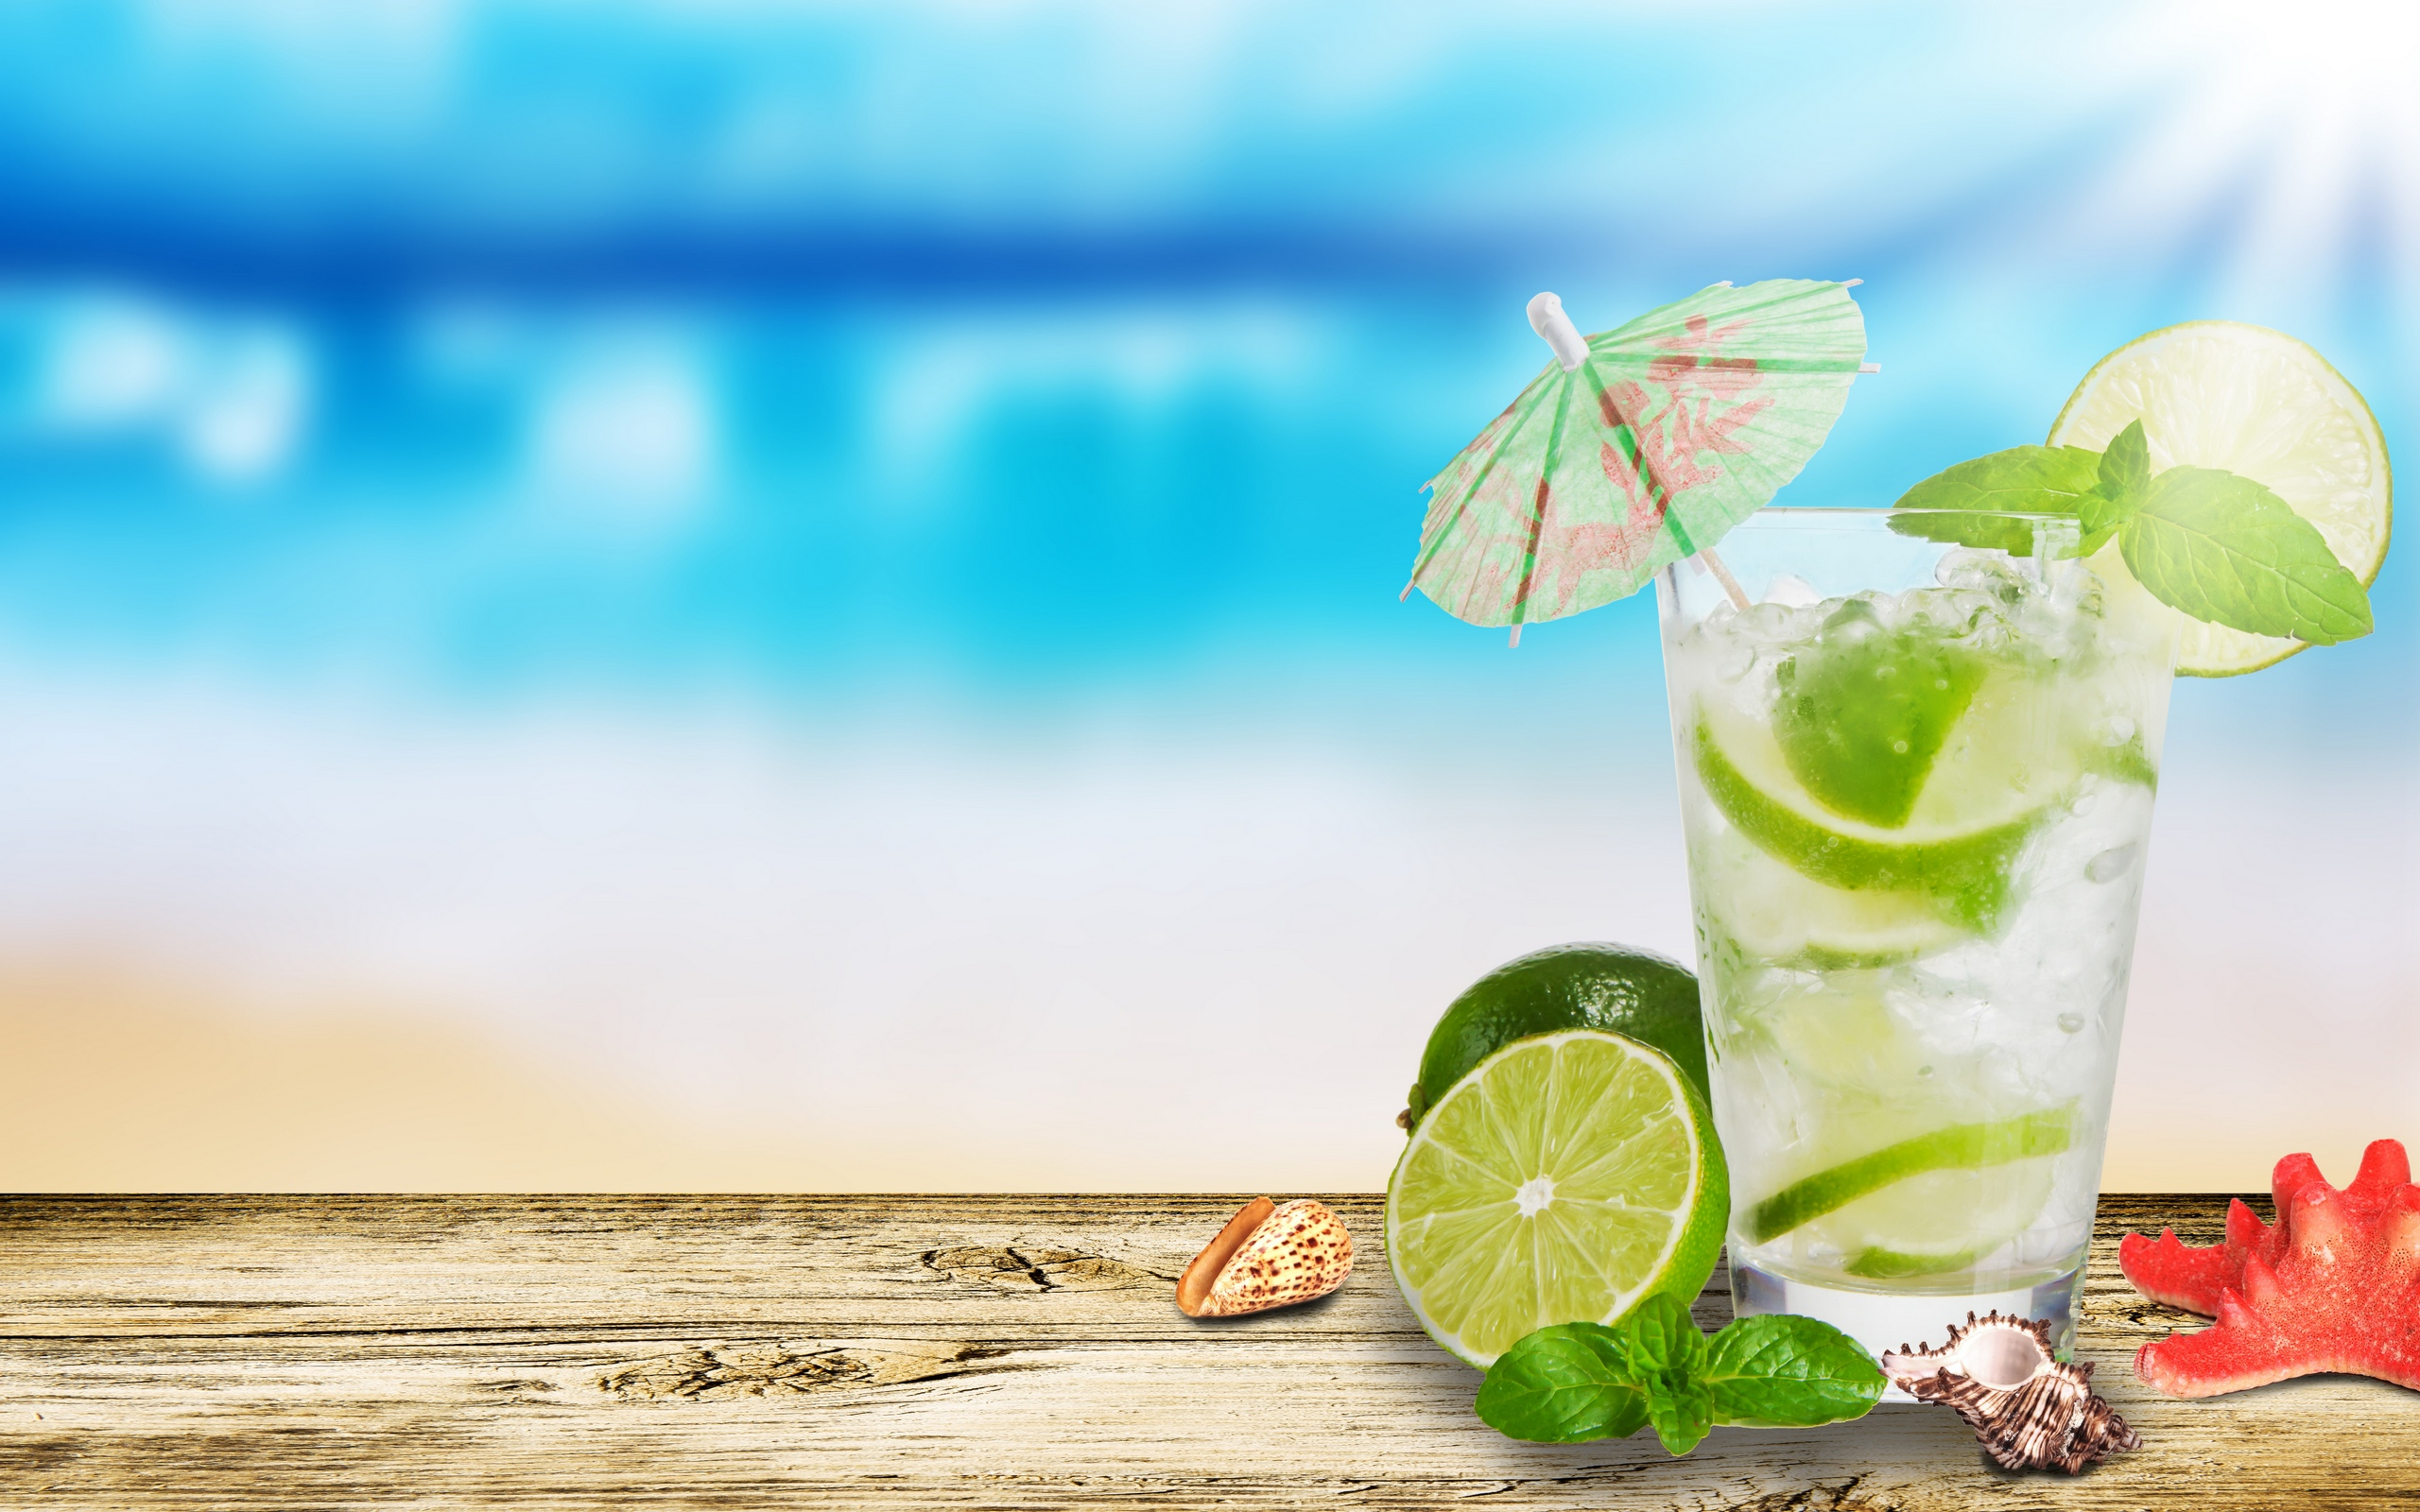 Lemon Summer Drink Wallpaper